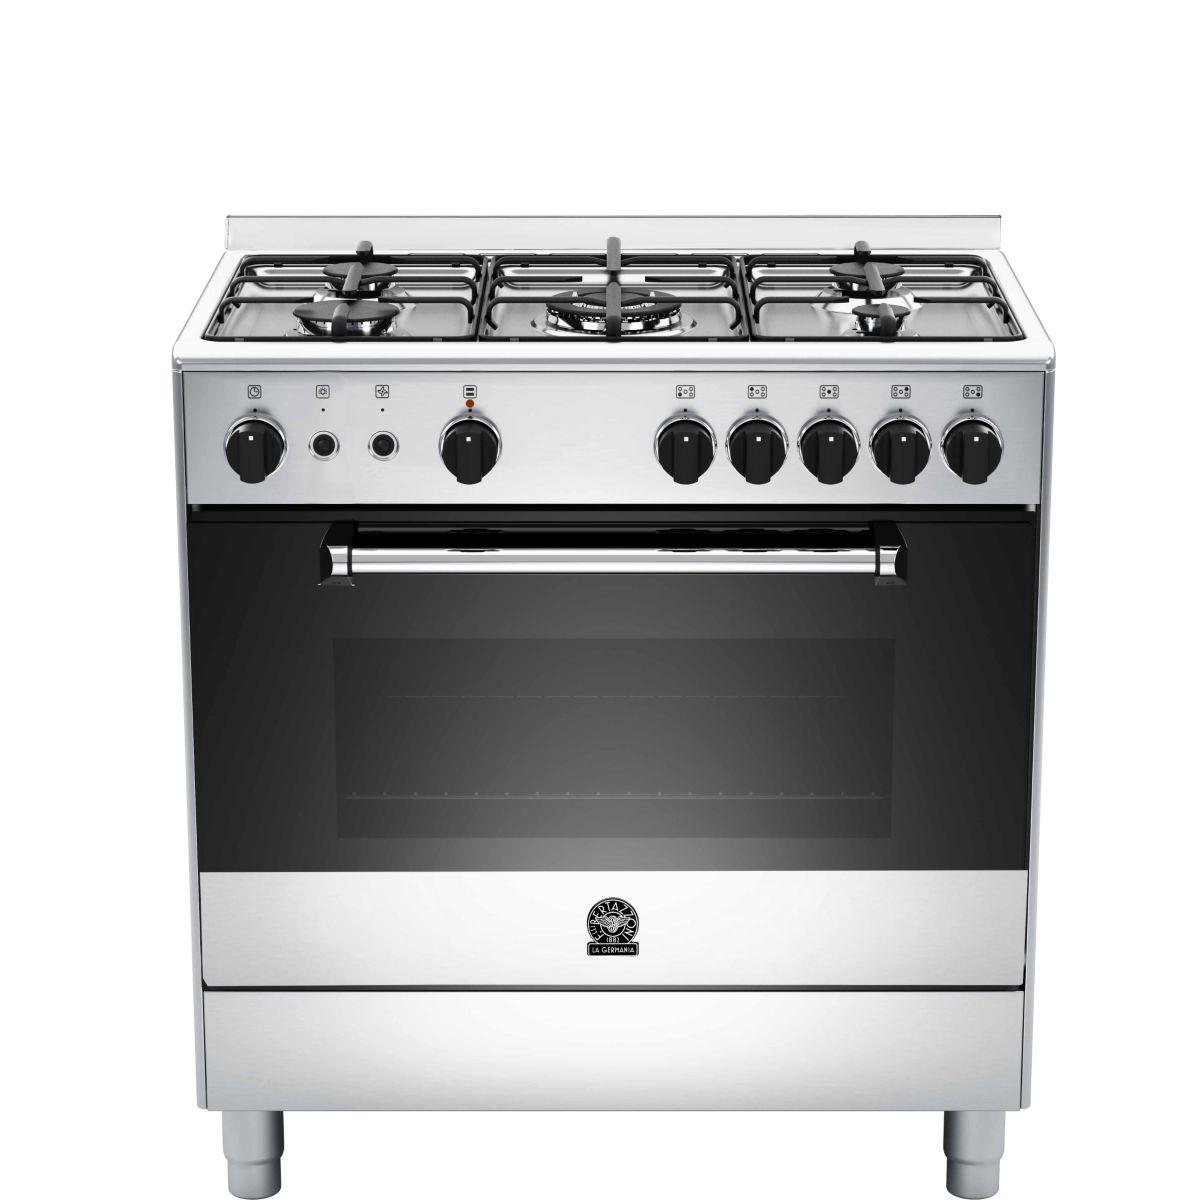 Piano de cuisson gaz bertazzoni germania am85c71dx - livraison offerte : code livp (photo)